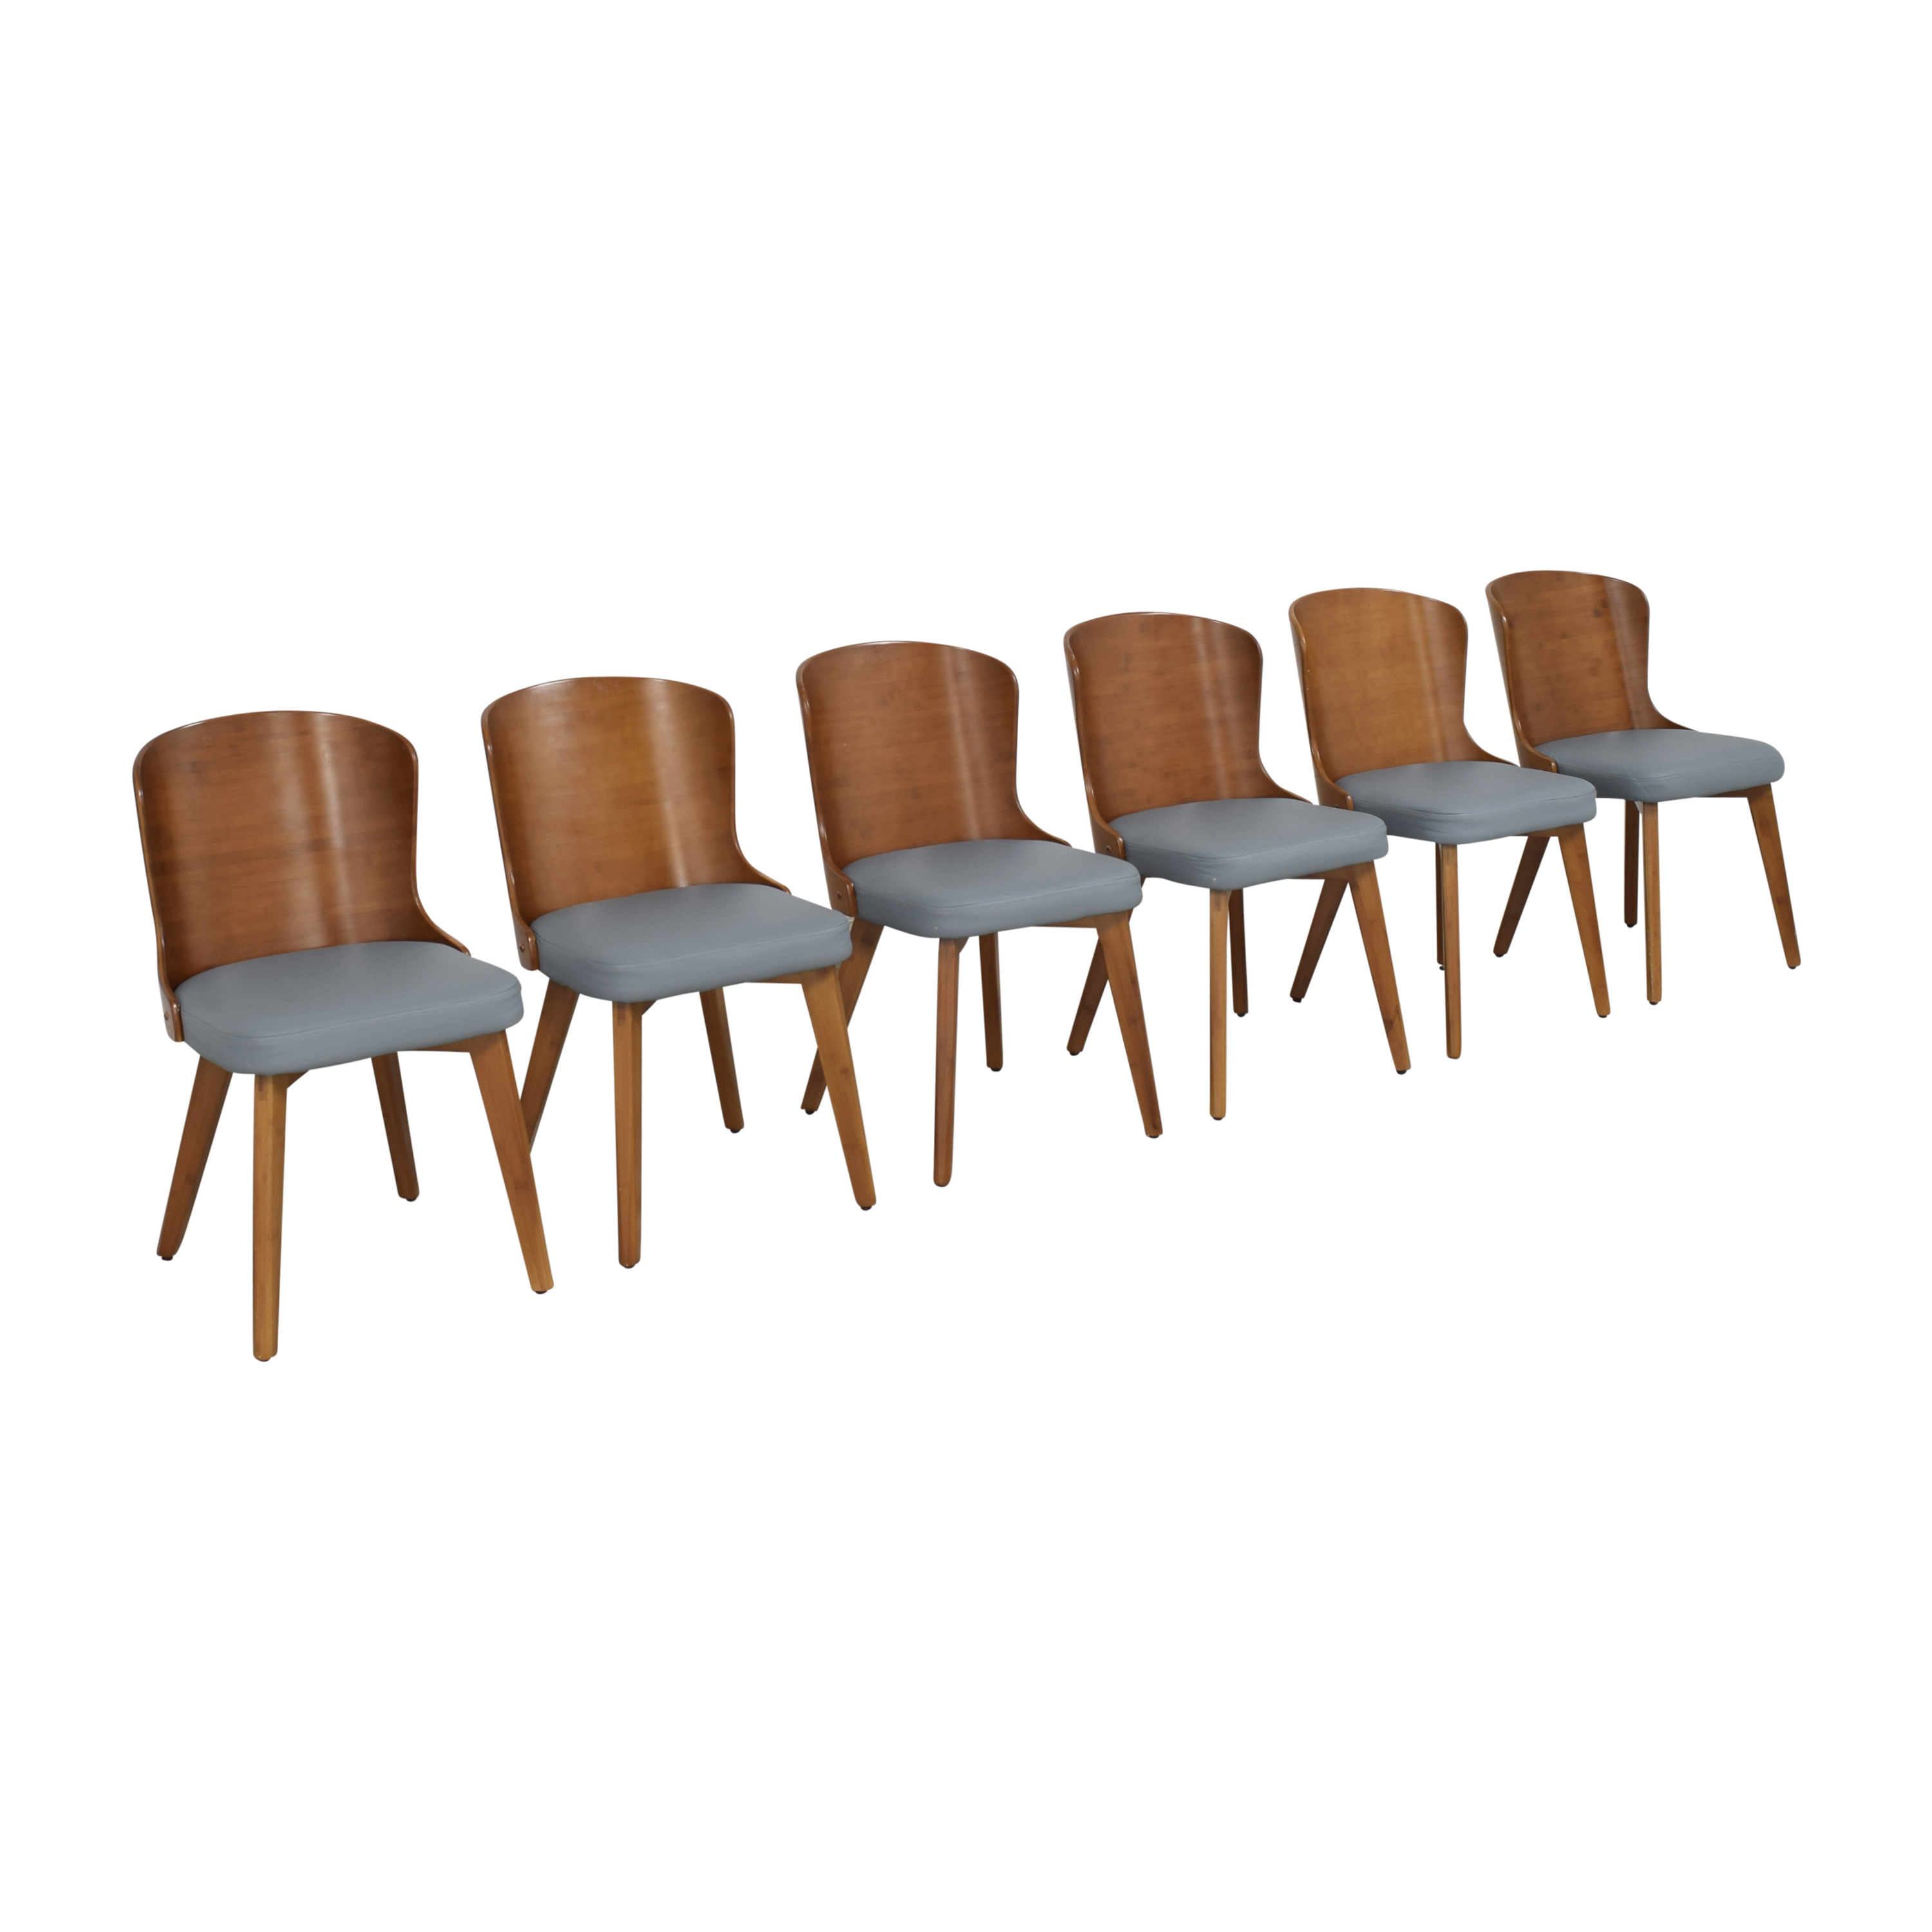 LumiSource LumiSource Bocello Dining Chairs Dining Chairs